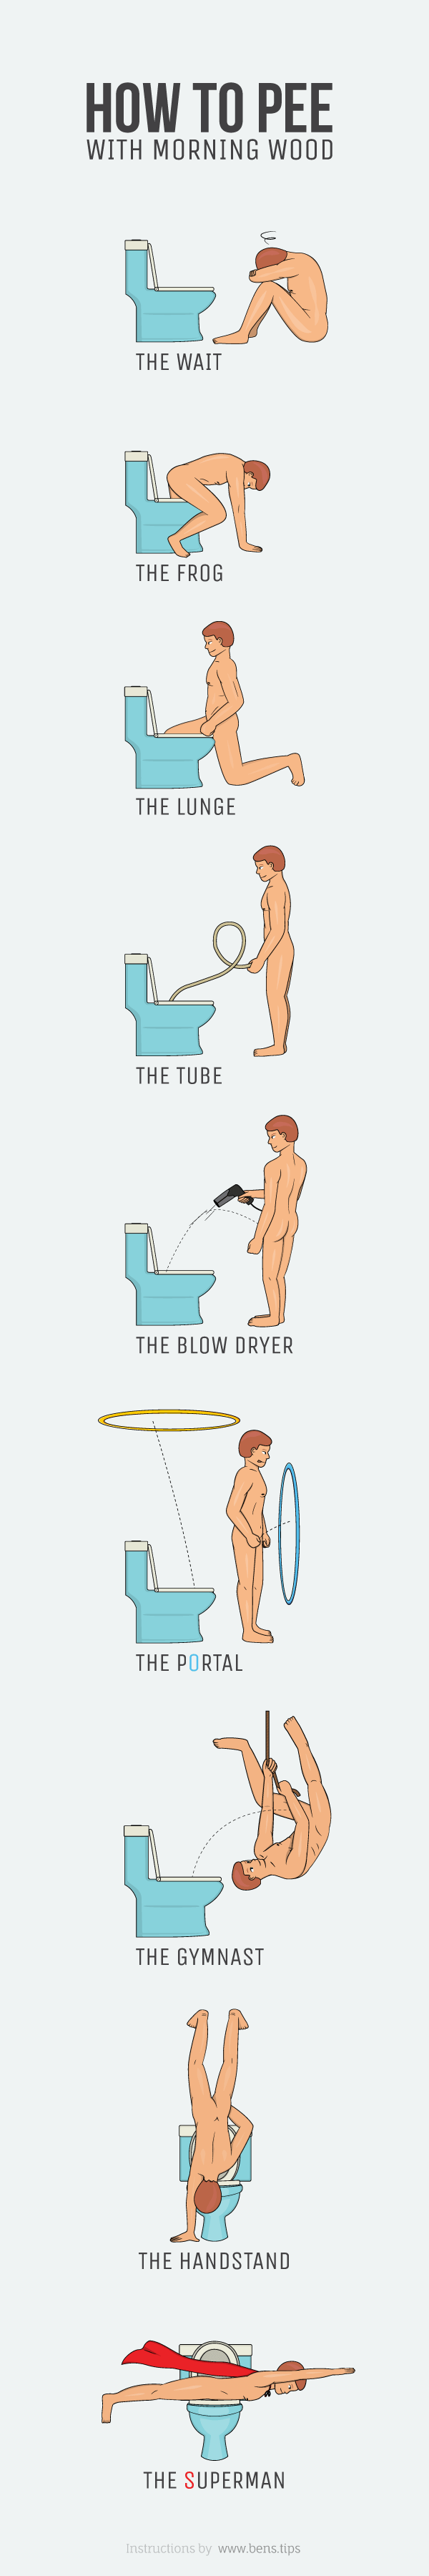 how-to-pee-with-morning-wood